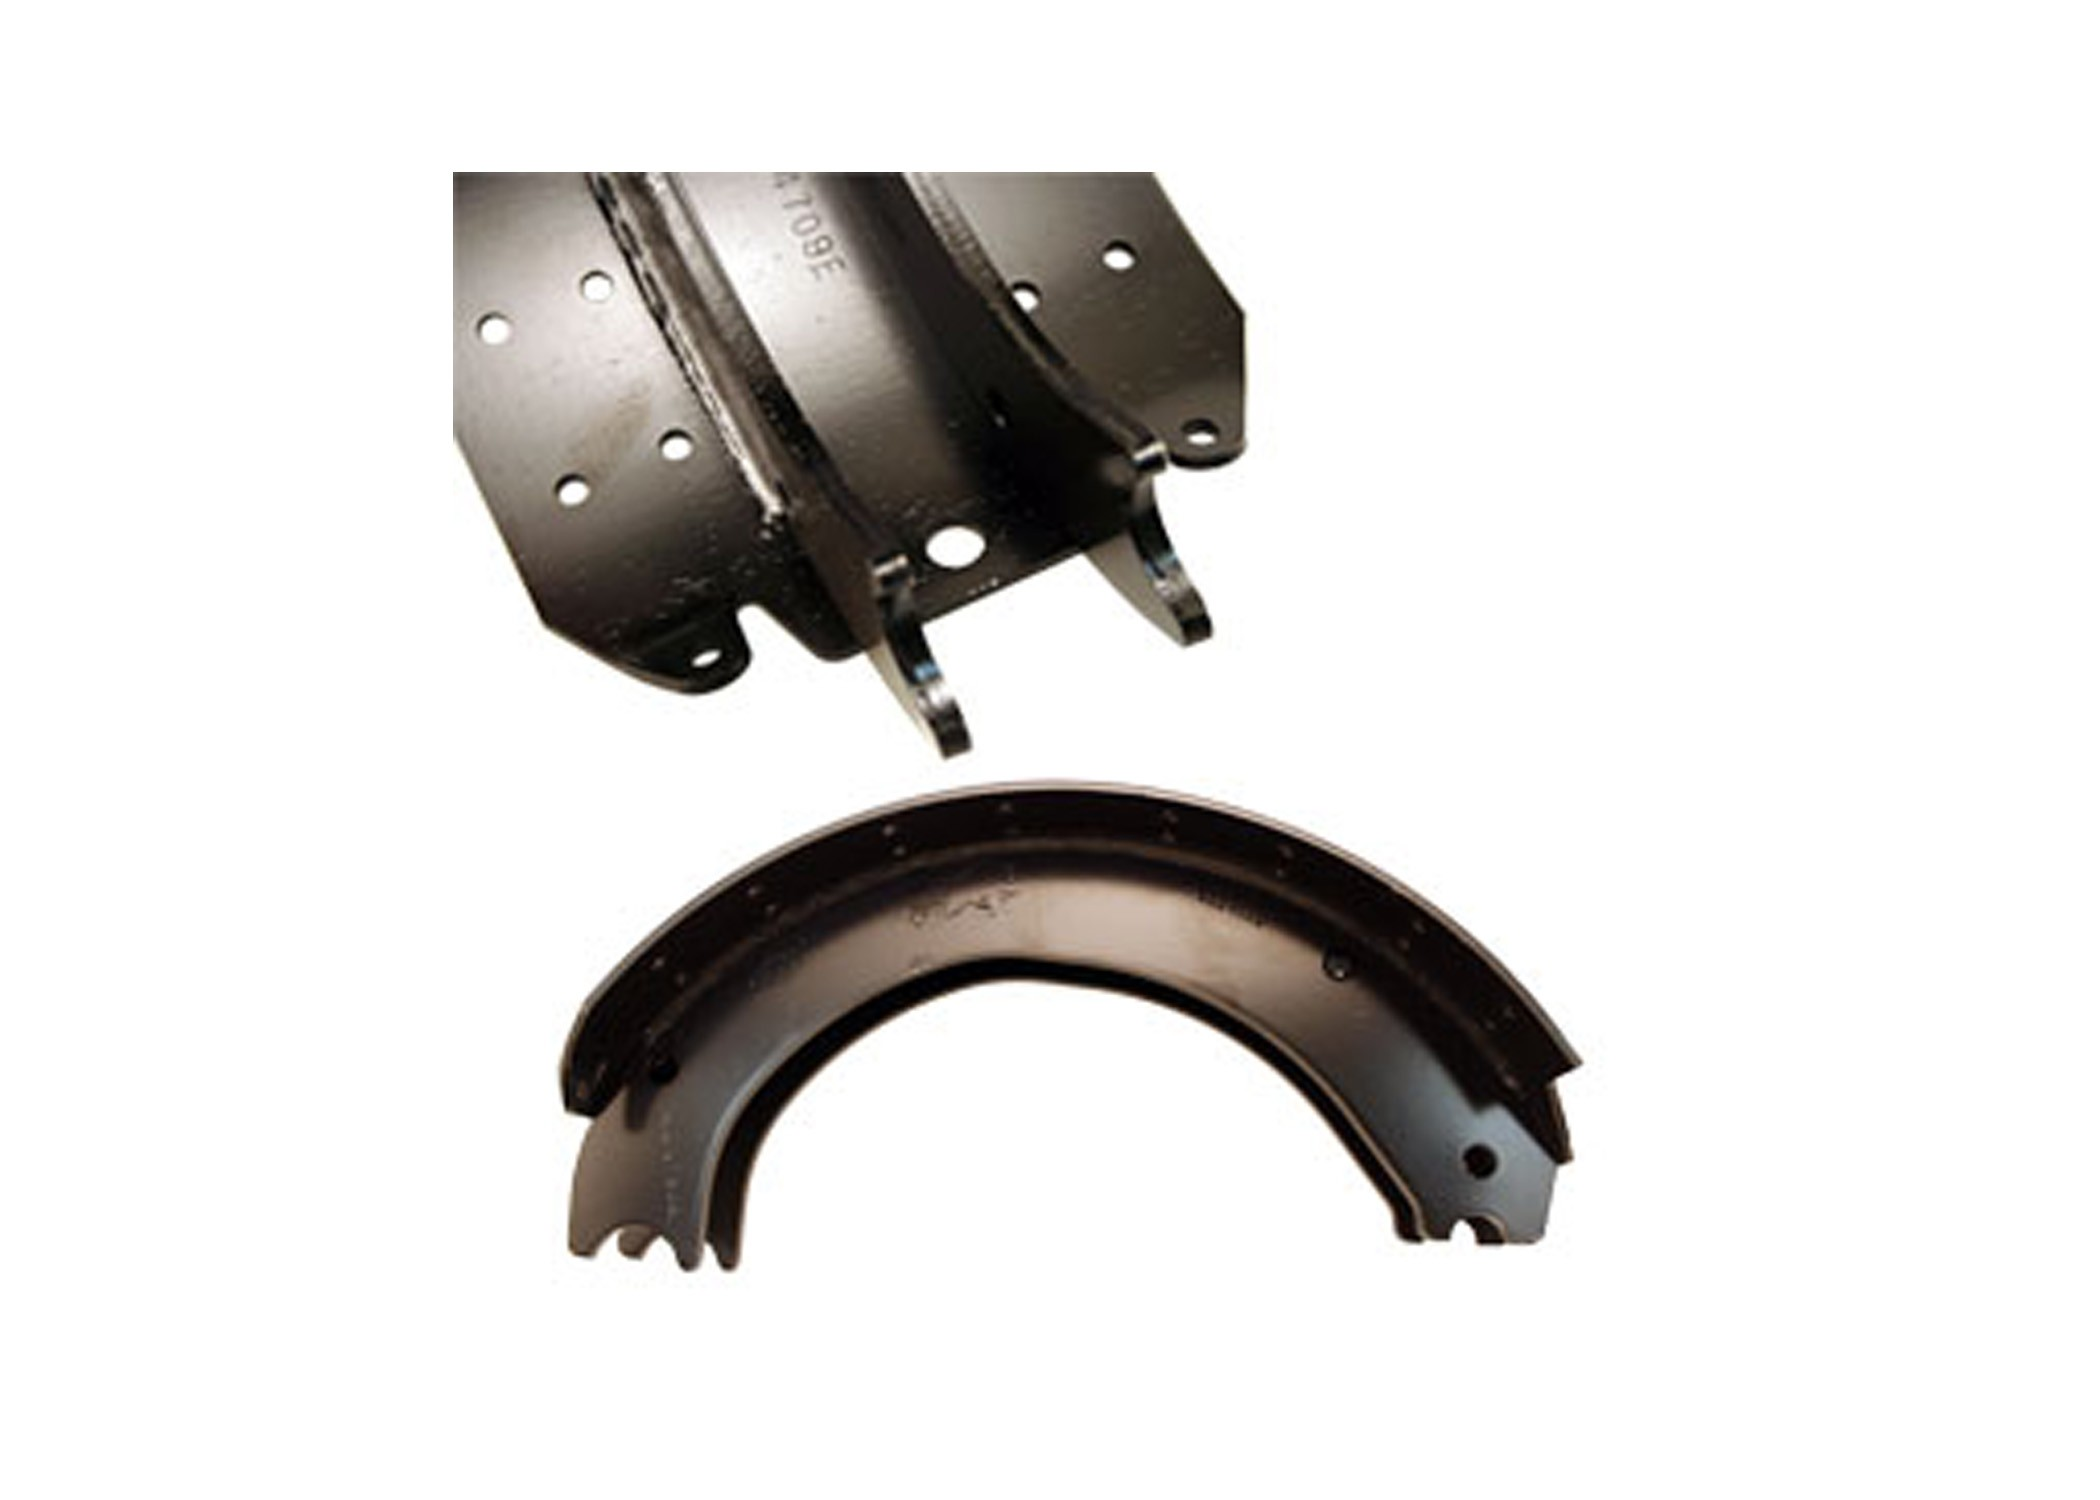 16 1  2in X 7in Eaton Extended Service Relined Brake Shoe Kit  23k   2 U0026quot  X 7 U0026quot  Wide Shoes